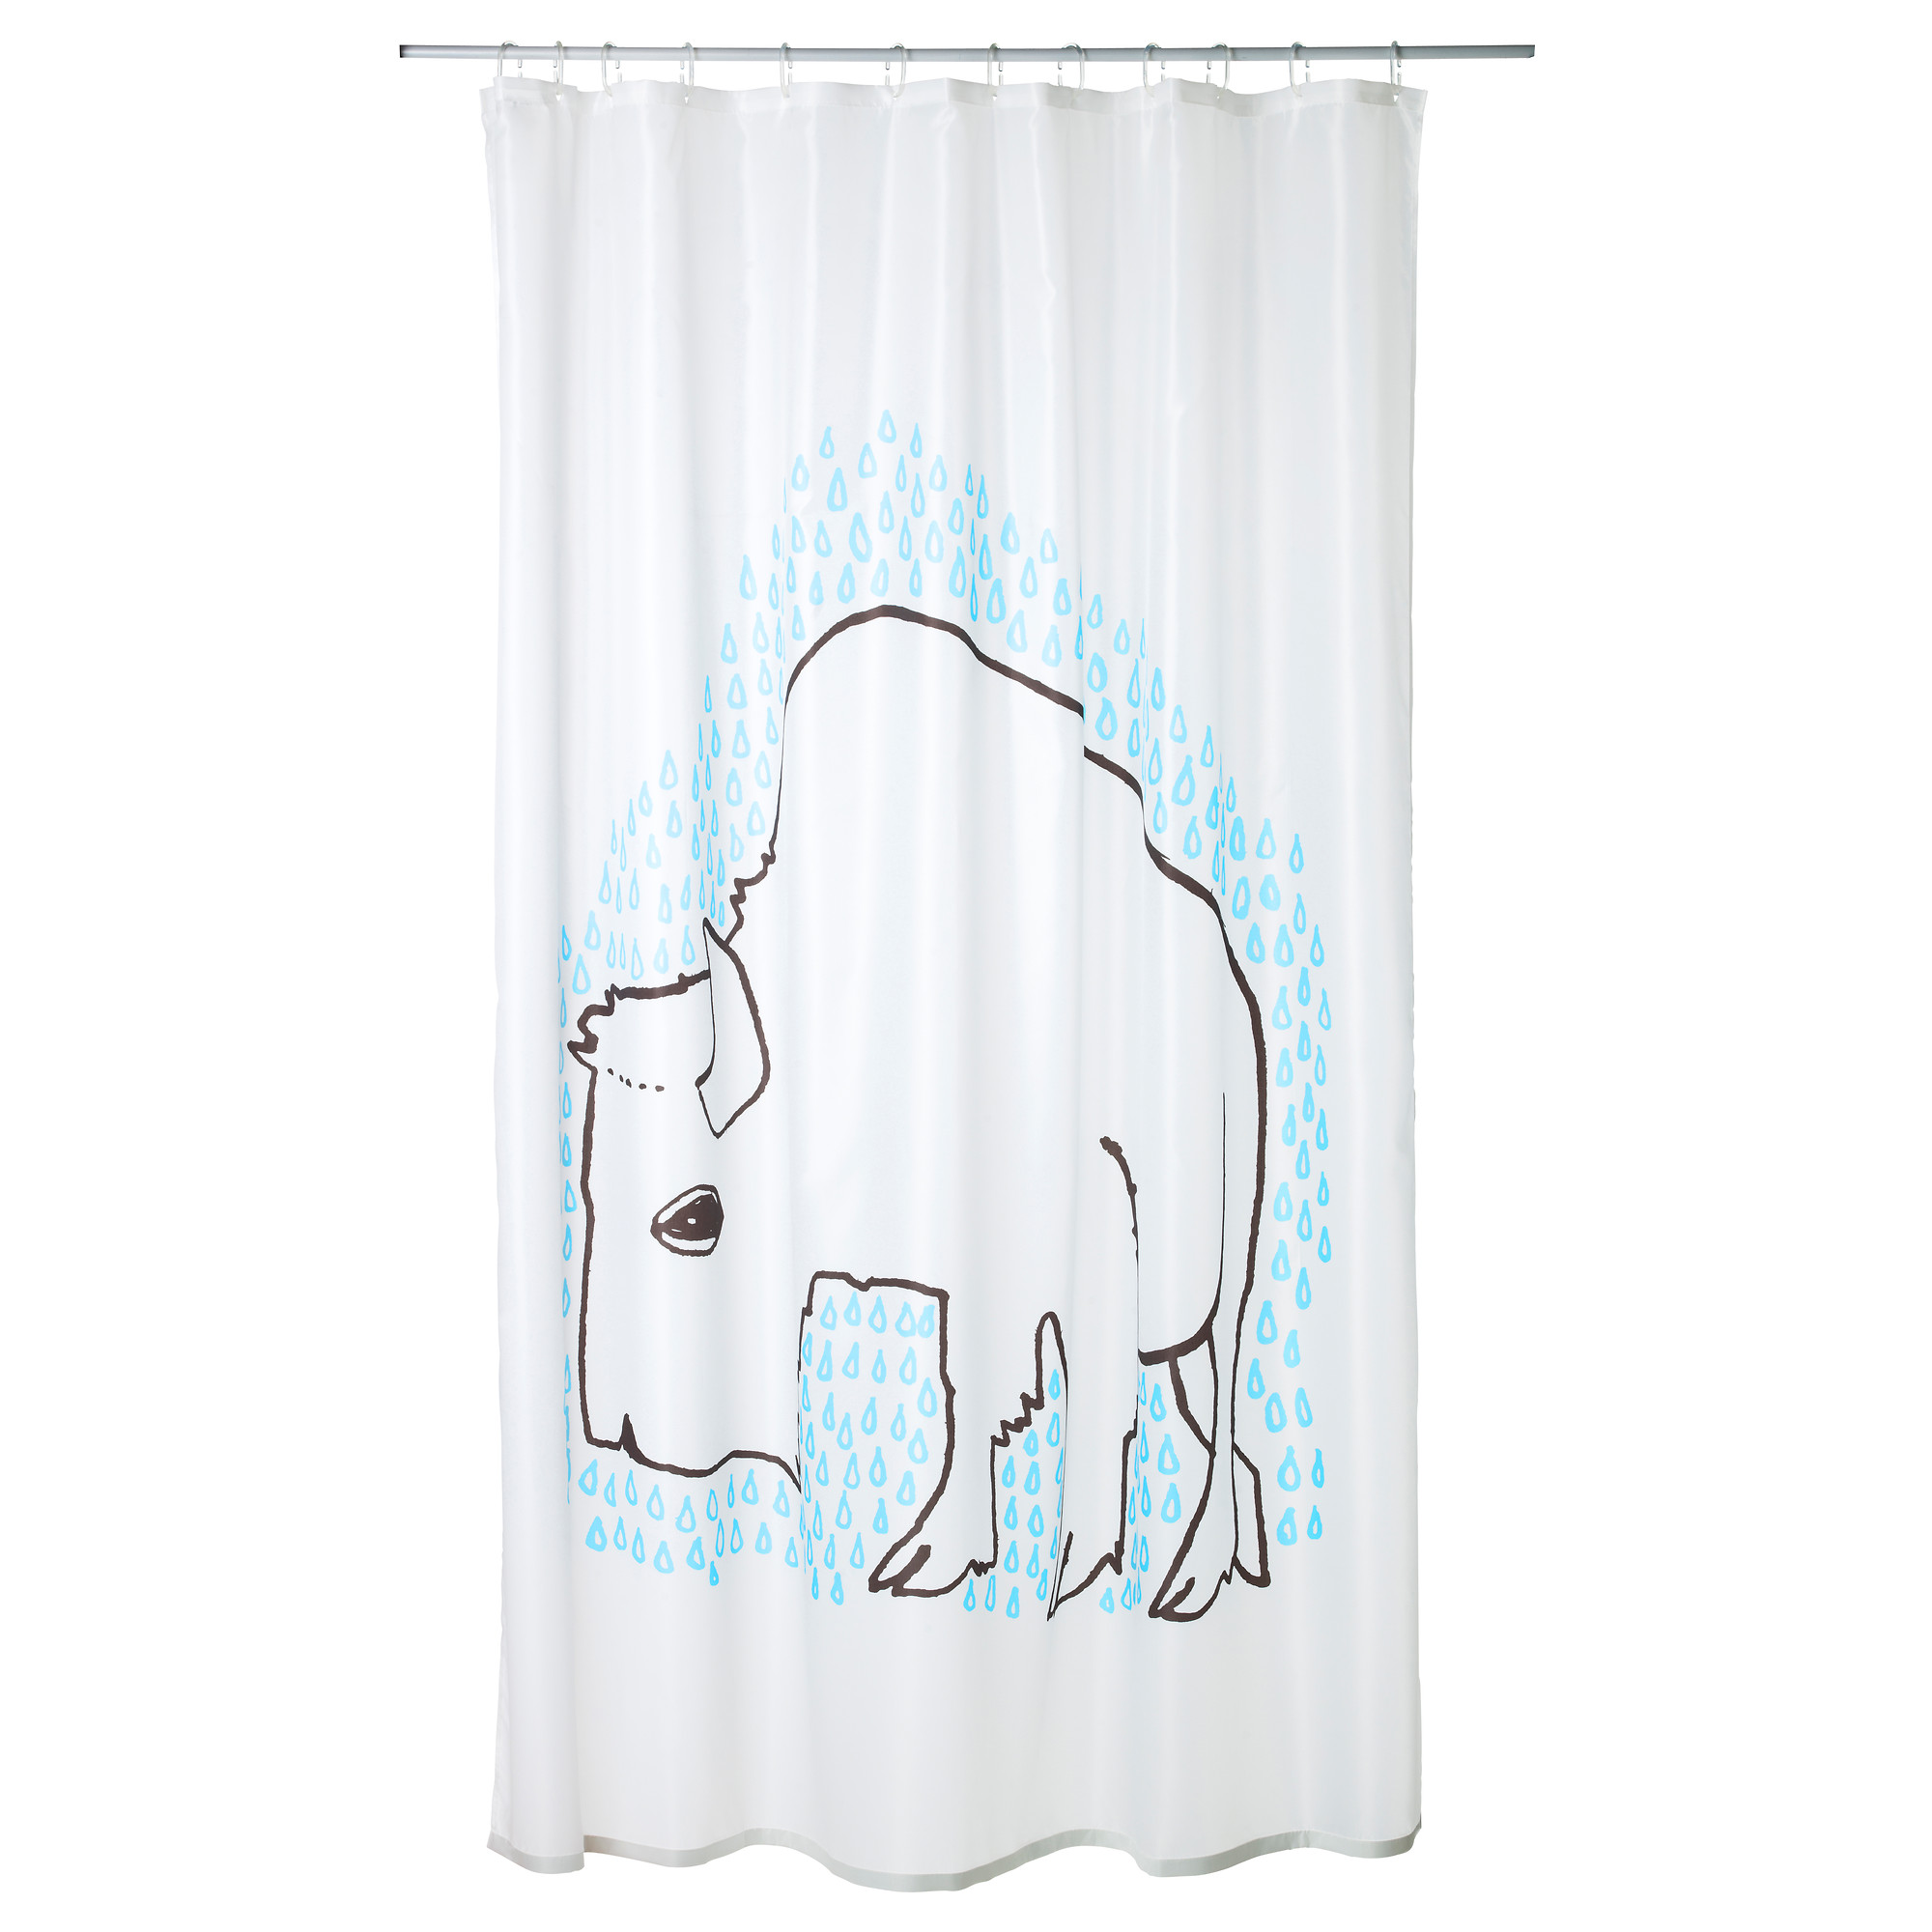 Shower Curtain Rail | Ikea Shower Curtain Hooks | Ikea Shower Curtain